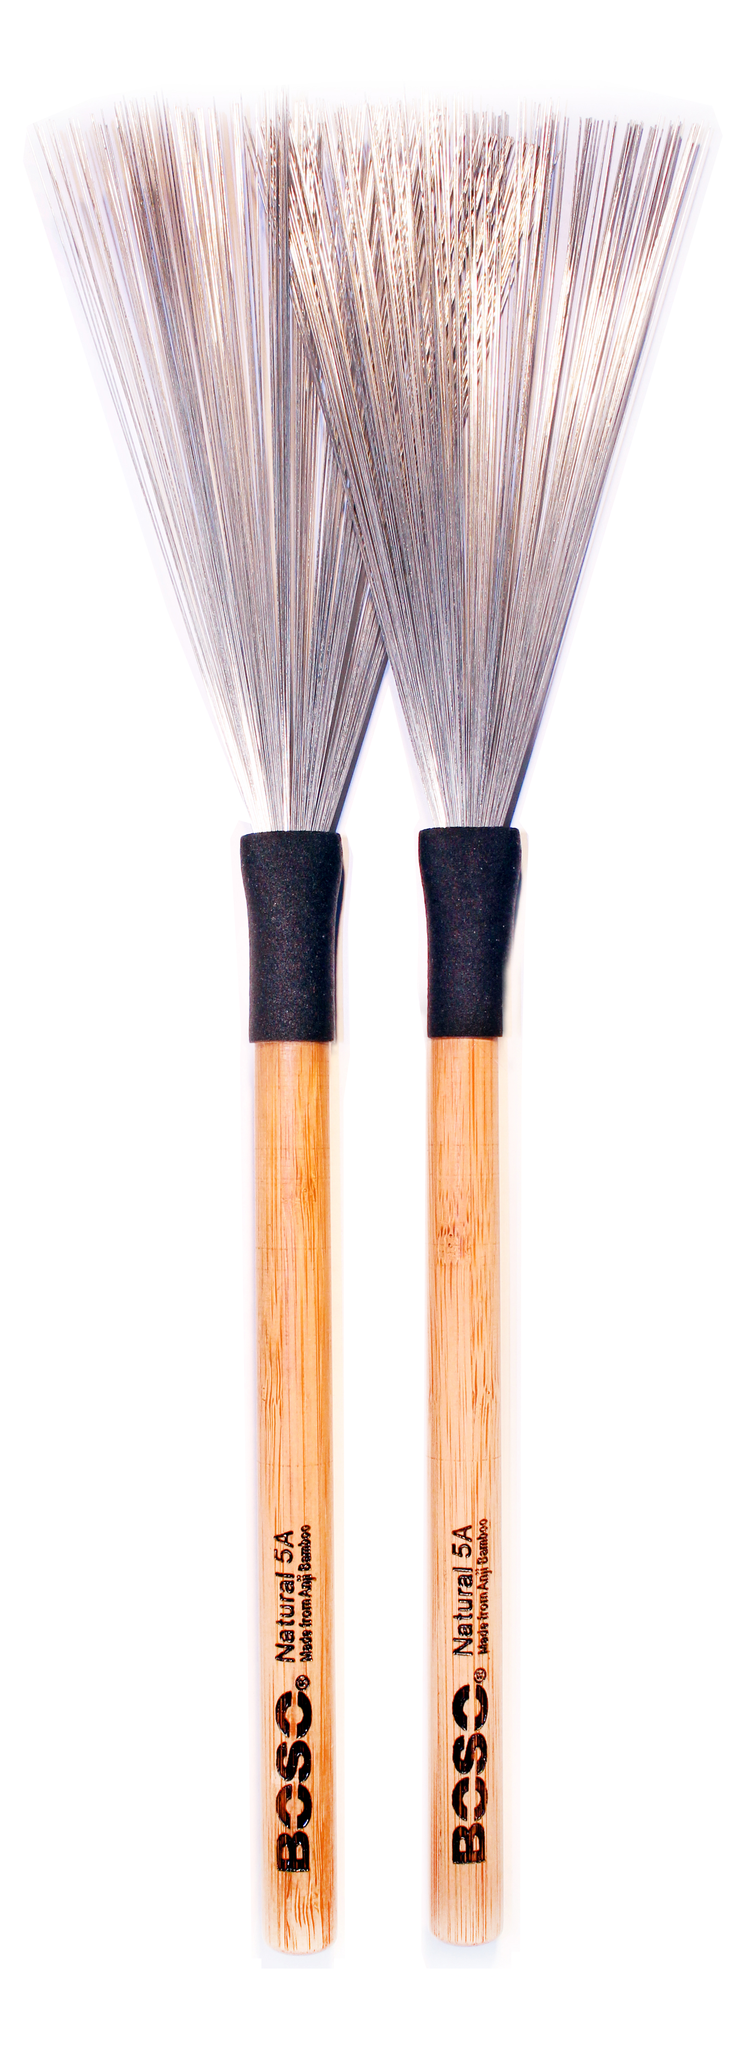 Boso Natural Fixed Handle Brushes